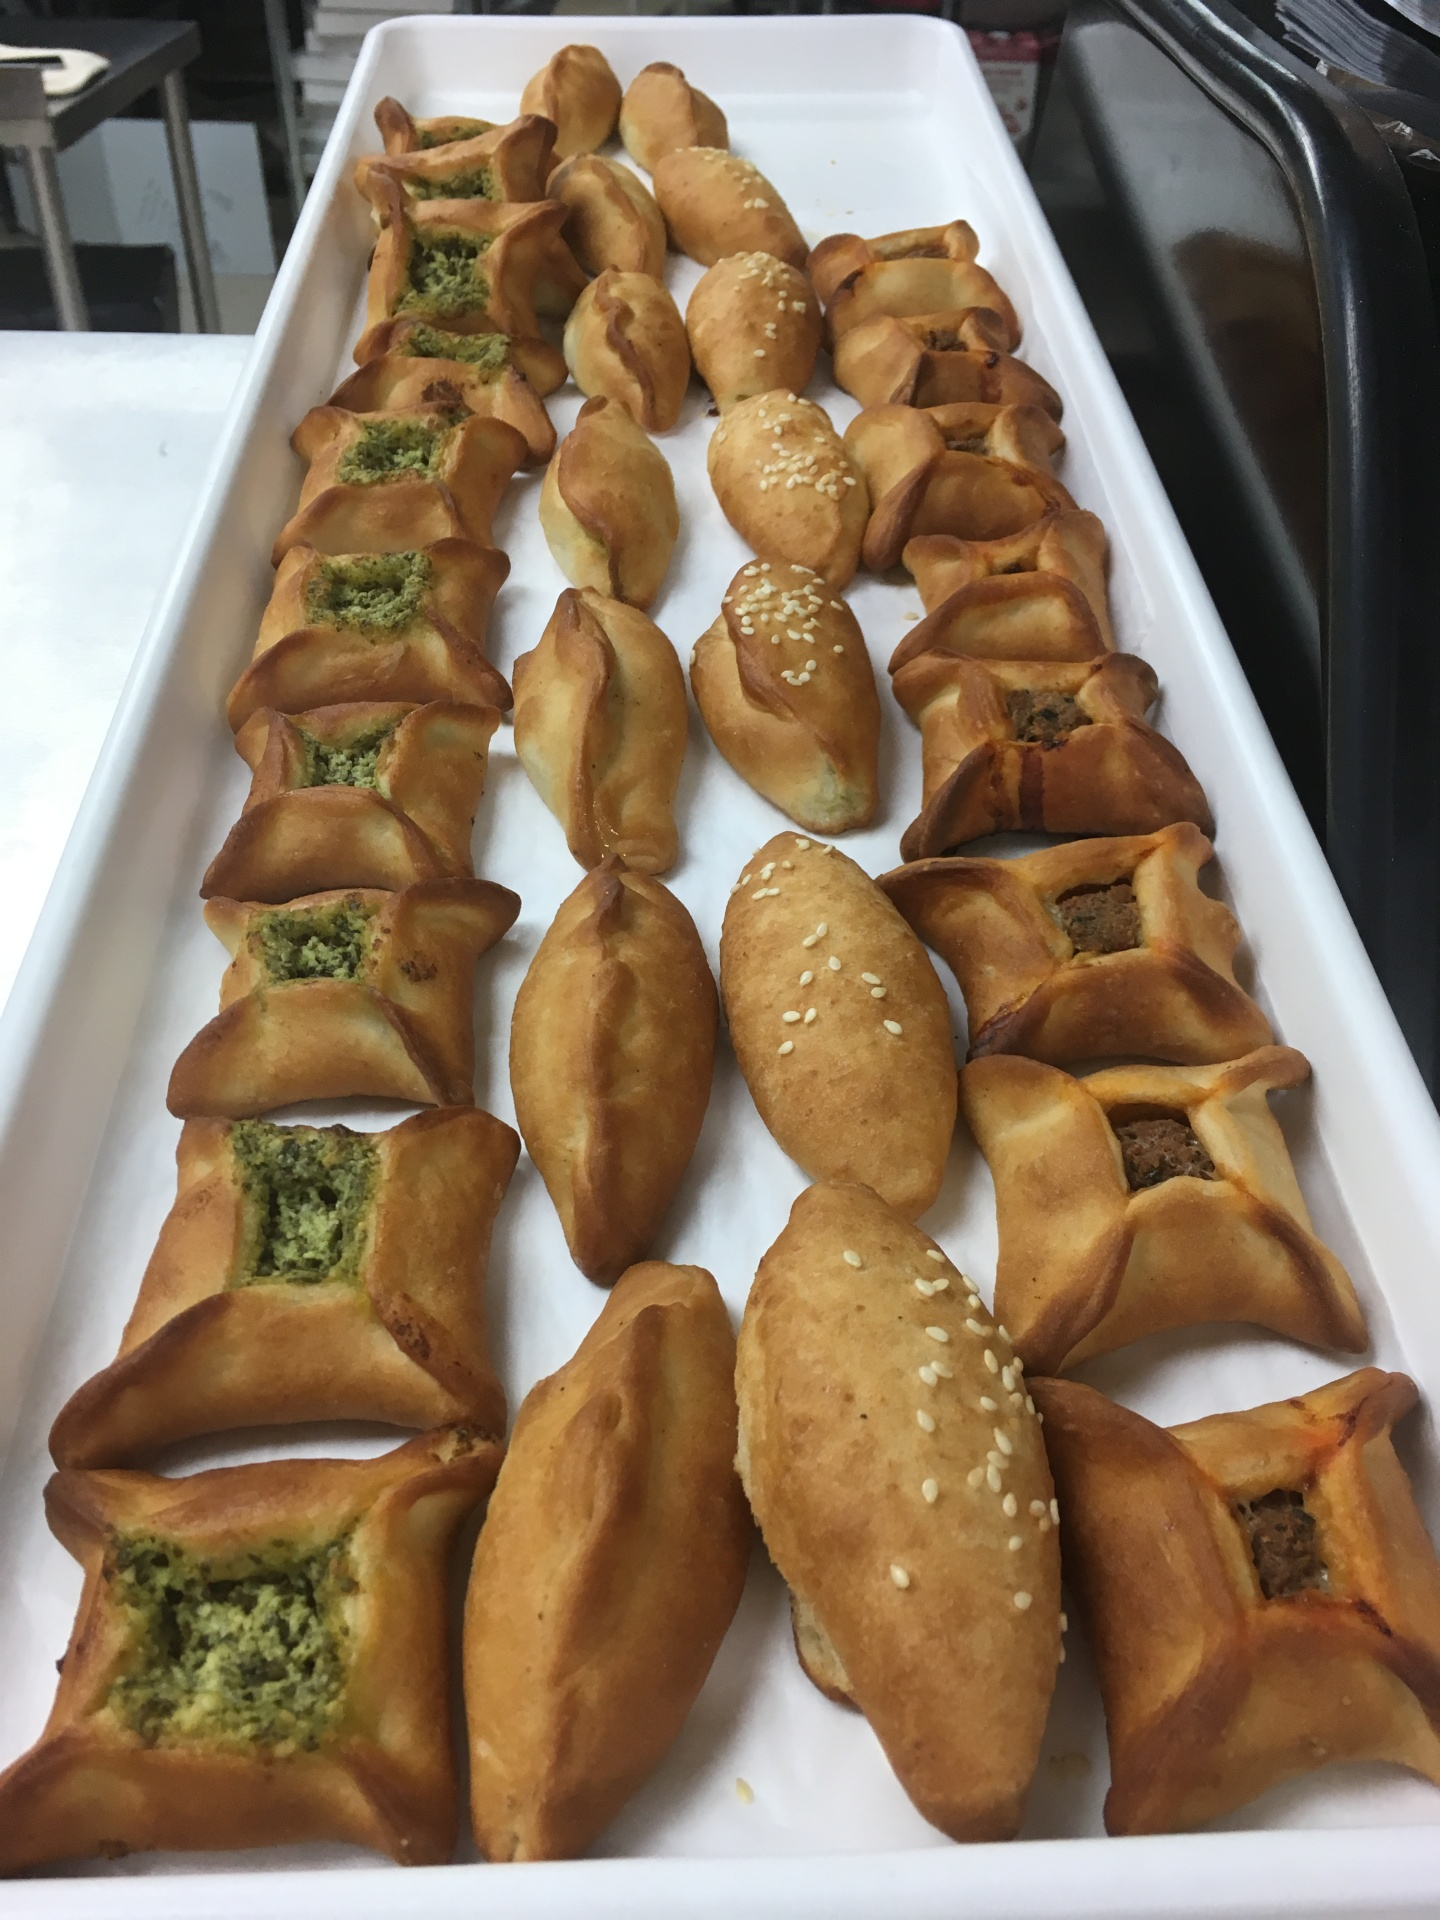 Broccoli and cheese, zaatar and meat pies